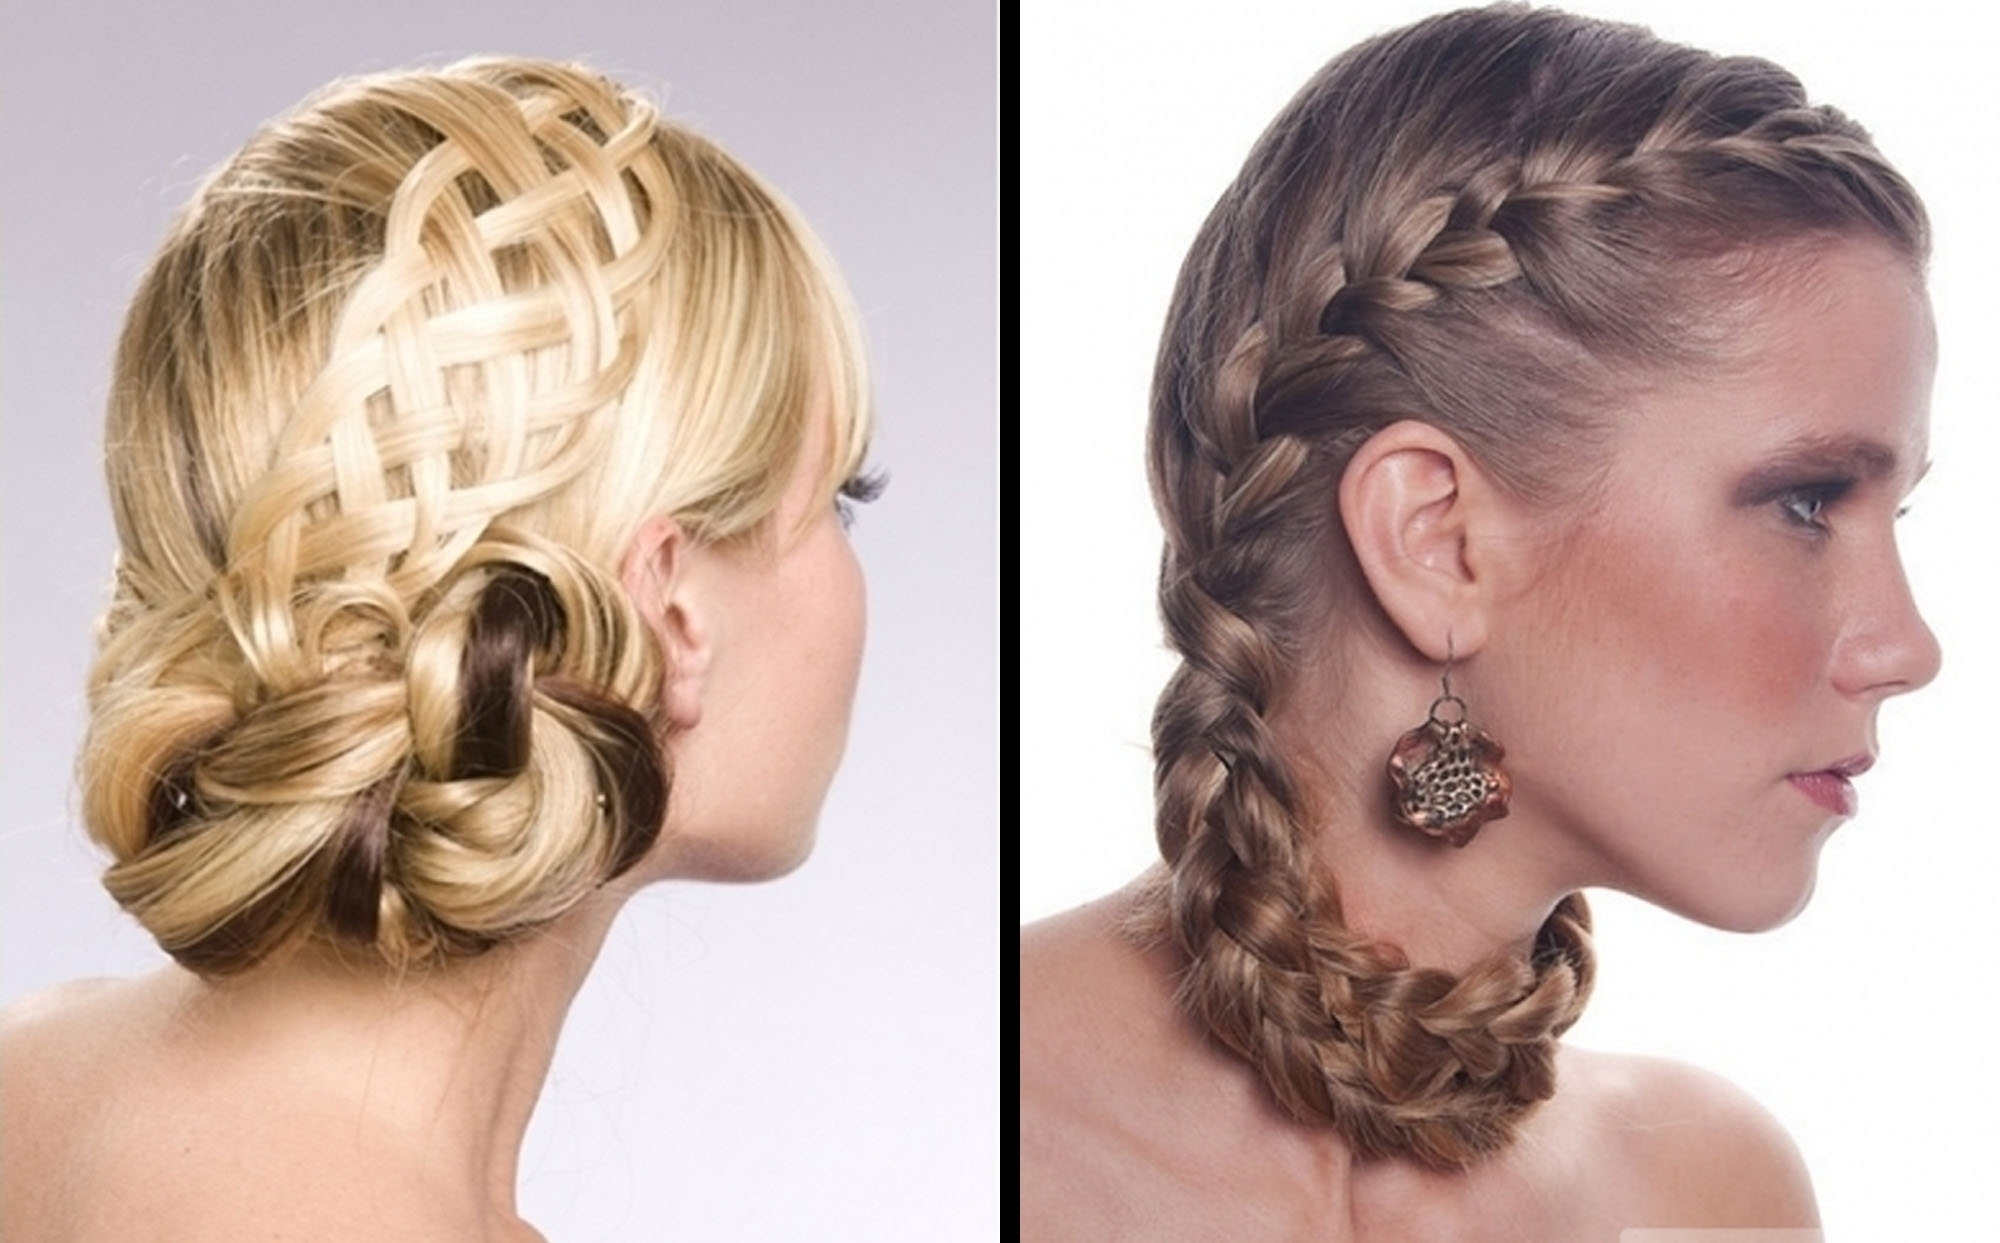 Funky Updo Hairstyles Formal Updo Hairstyles For Long Hair Funky For Funky Updo Hairstyles For Long Hair (View 9 of 15)